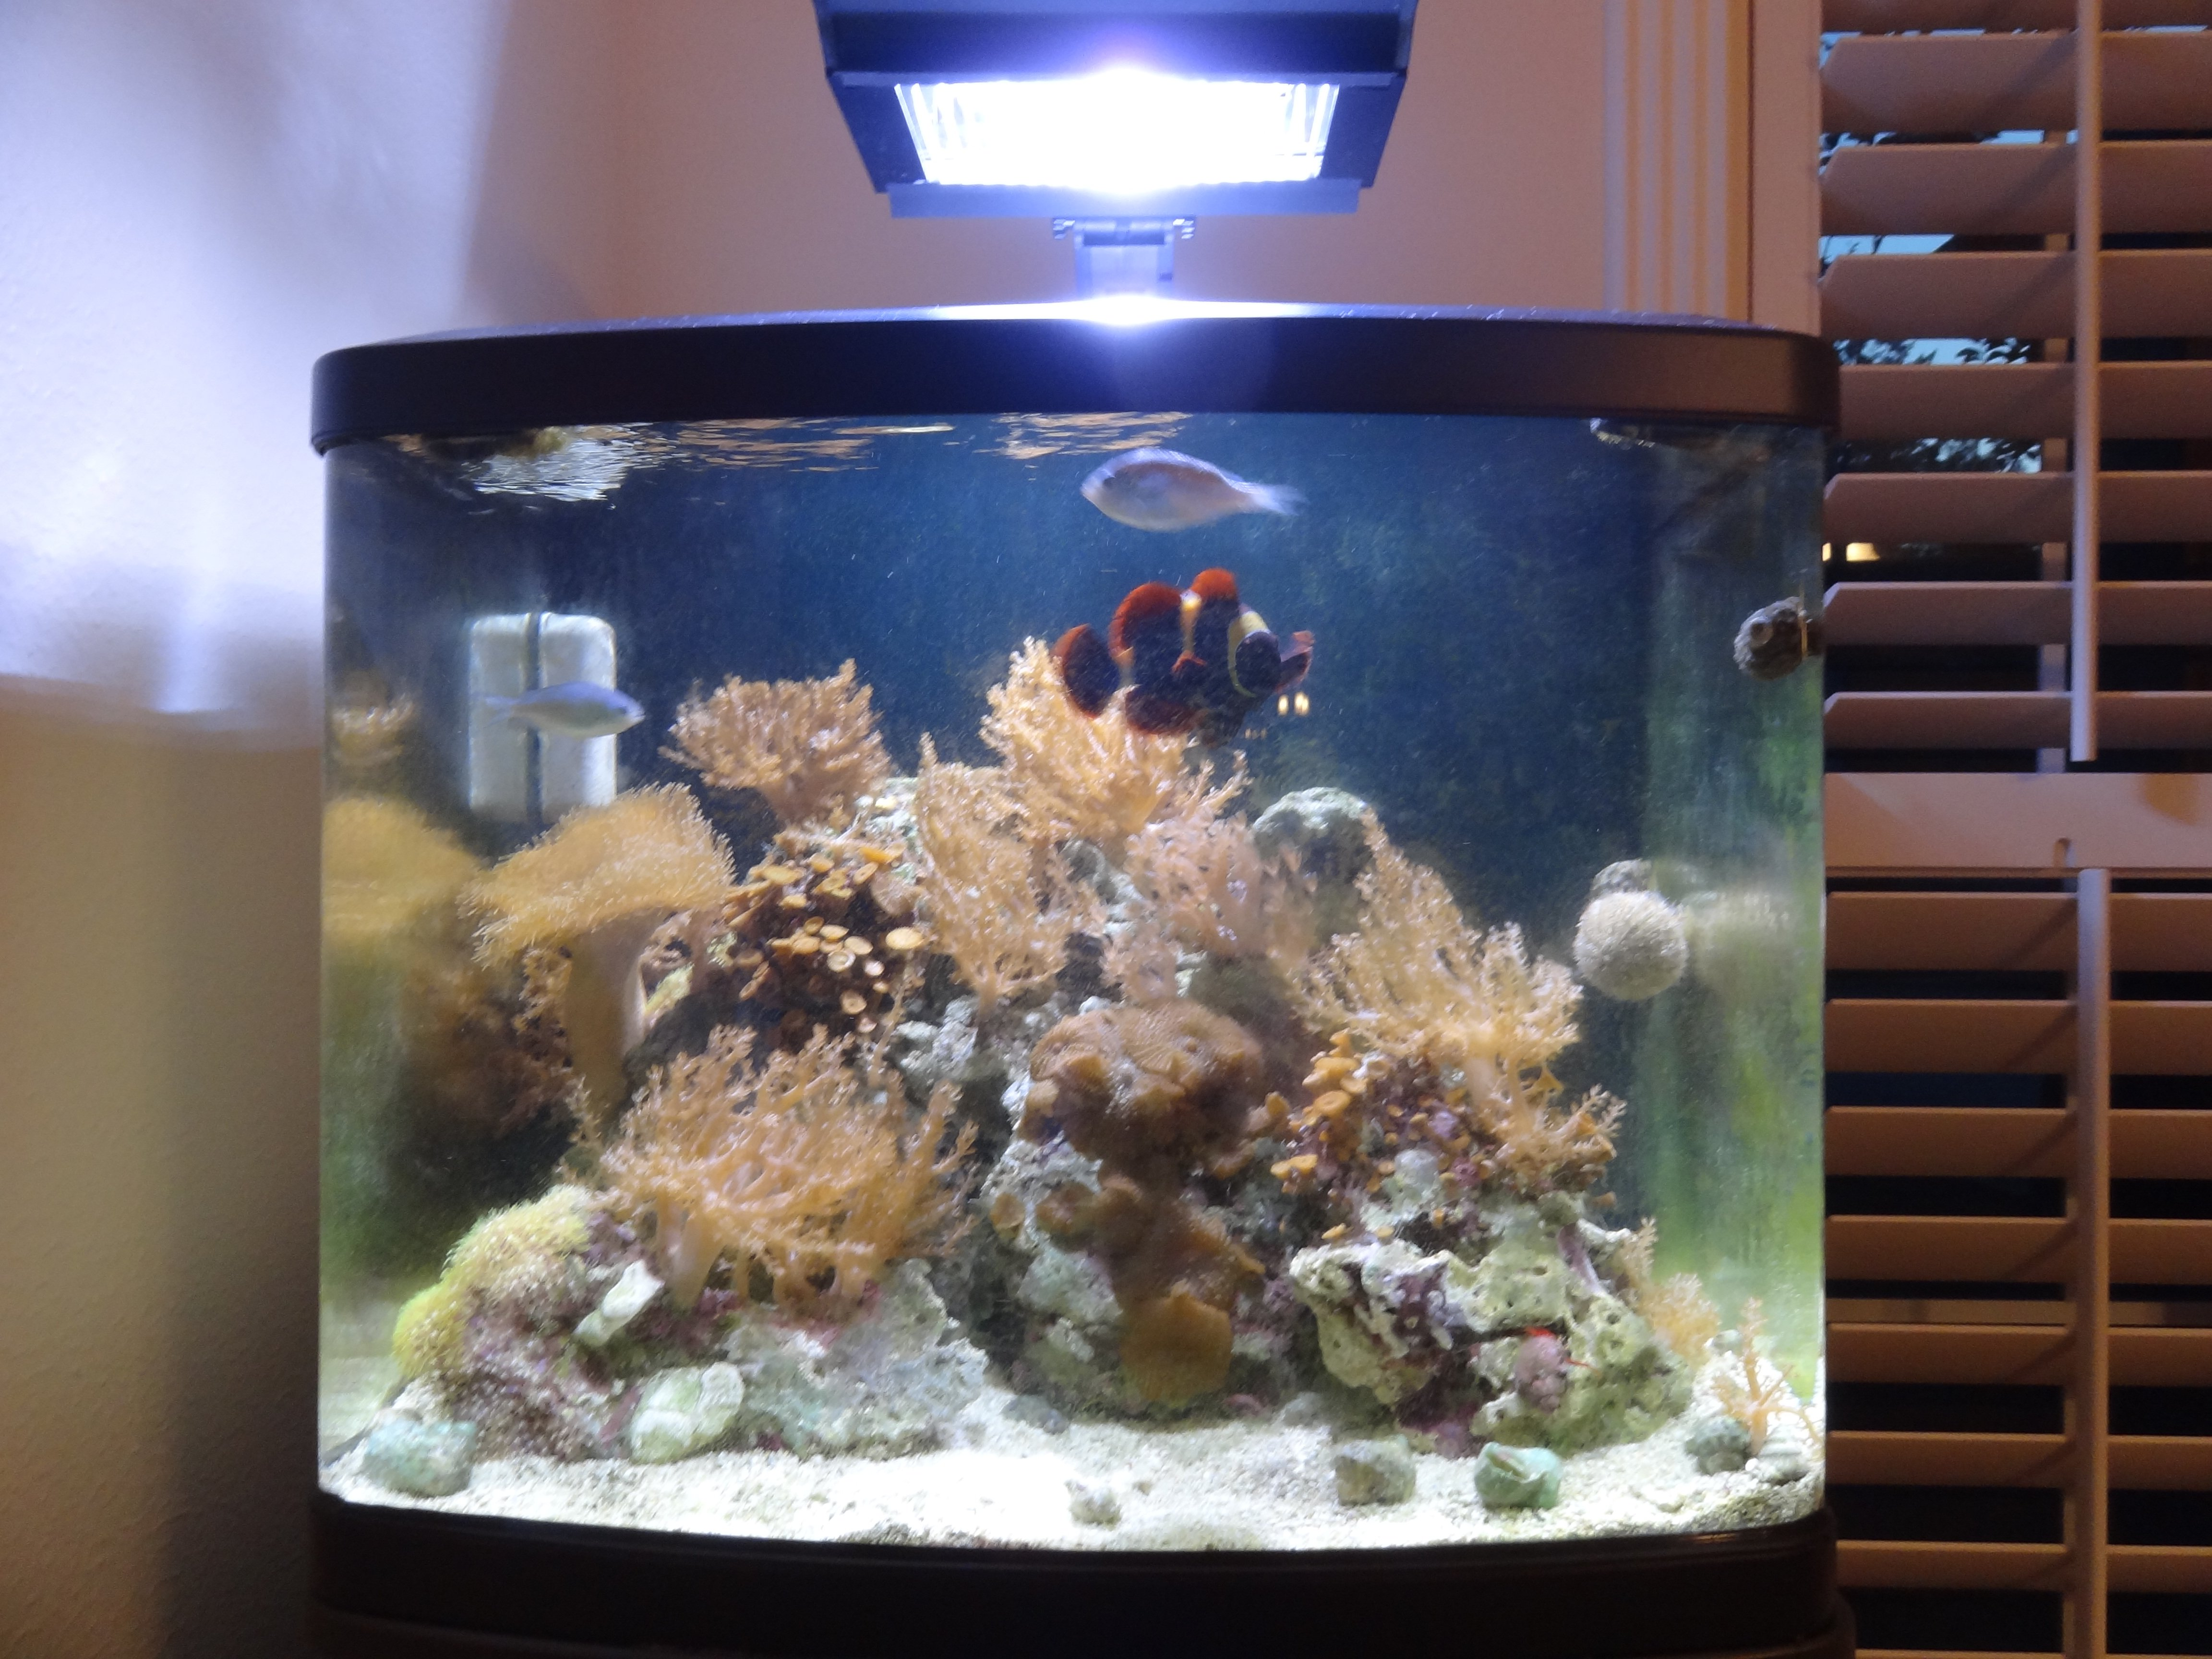 New 29 gallon biocube hqi with stand fish live rock and for Bio cube fish tank